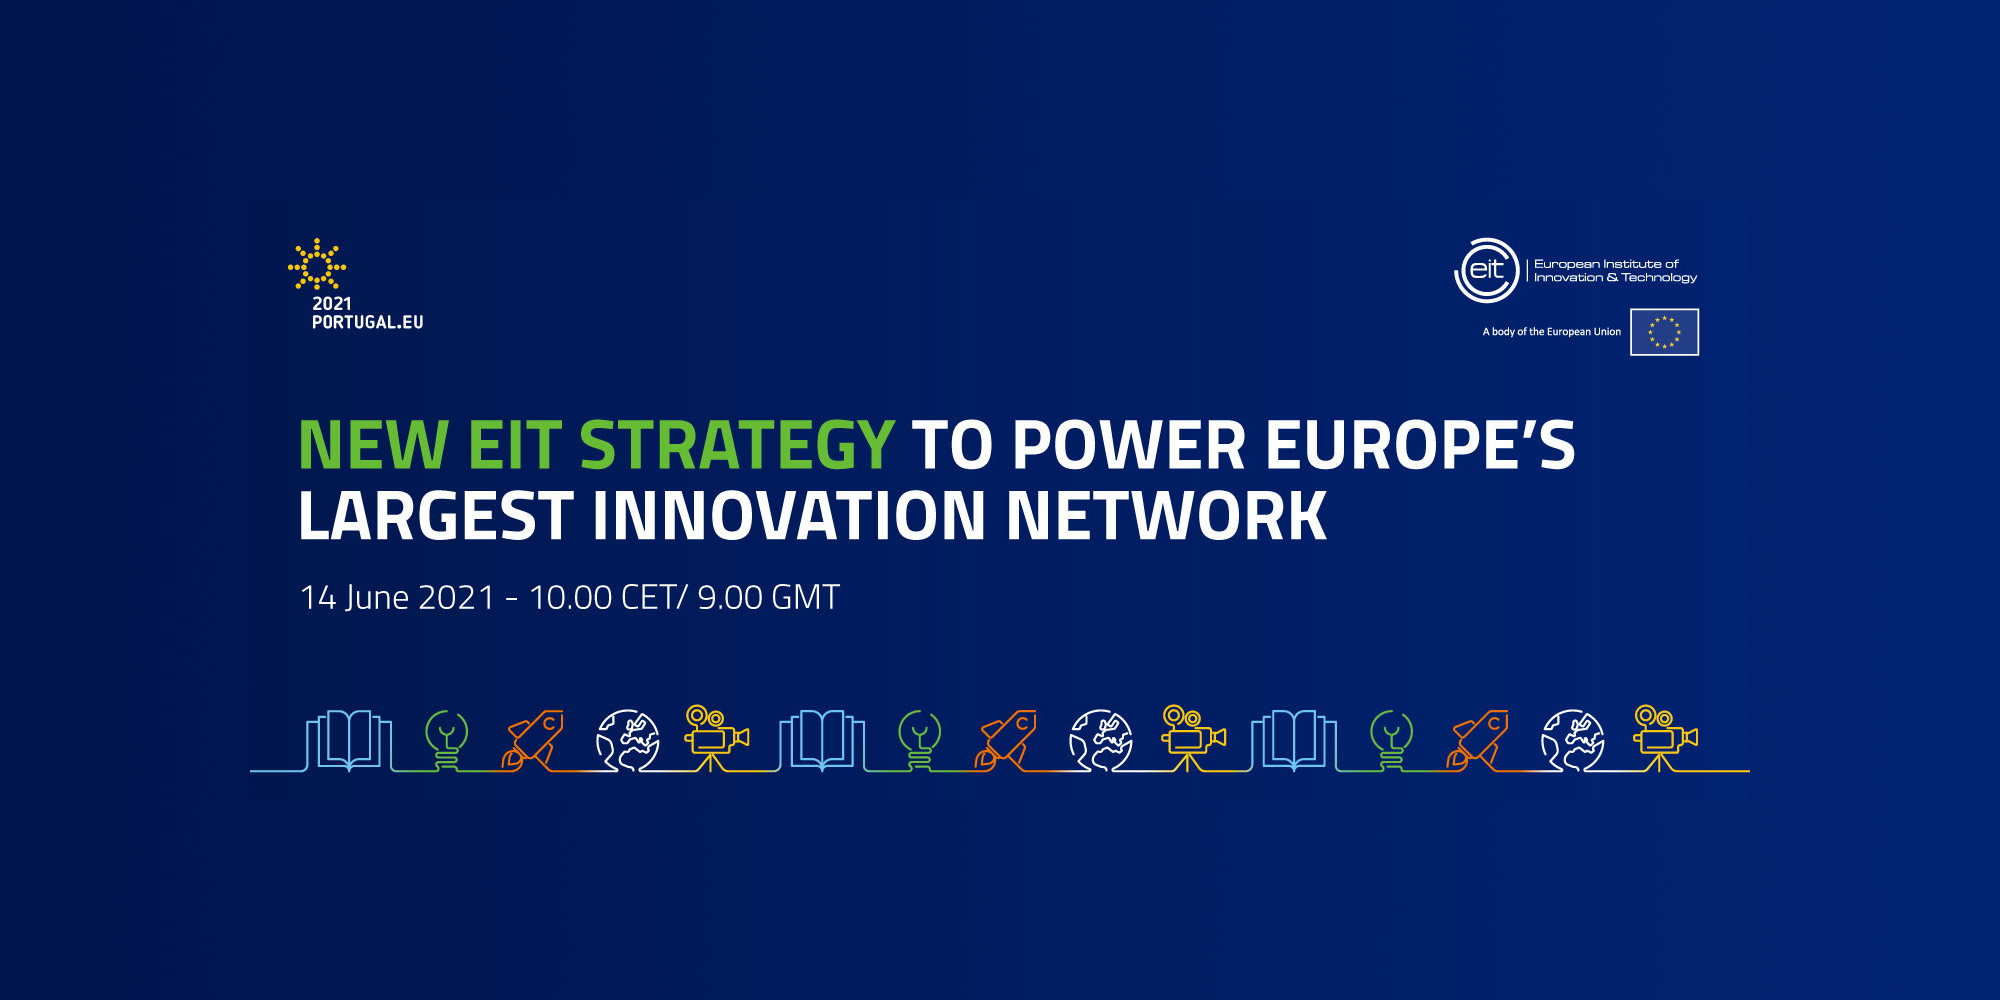 EIT Strategy to Power Europe's Largest Innovation Network